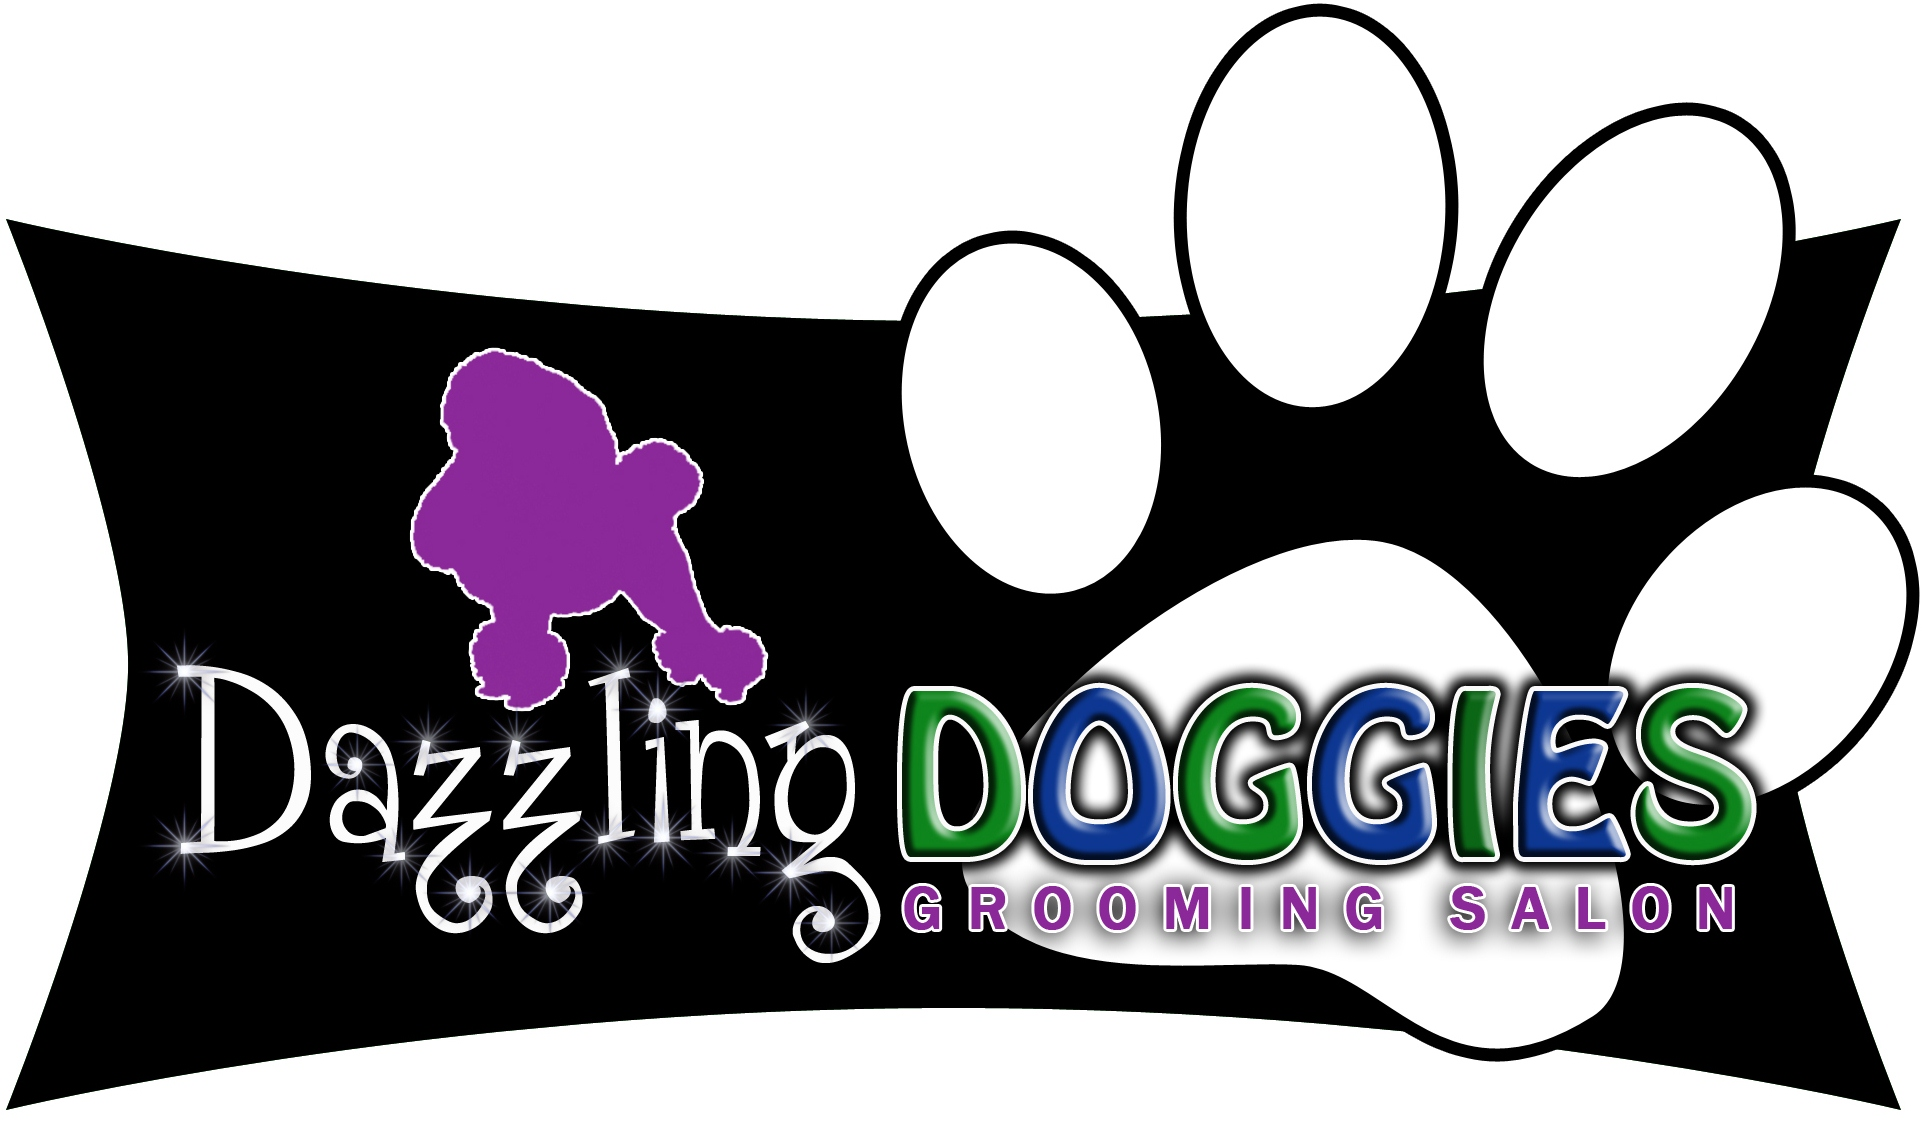 Logo image for Dazzling Doggies Grooming Salon